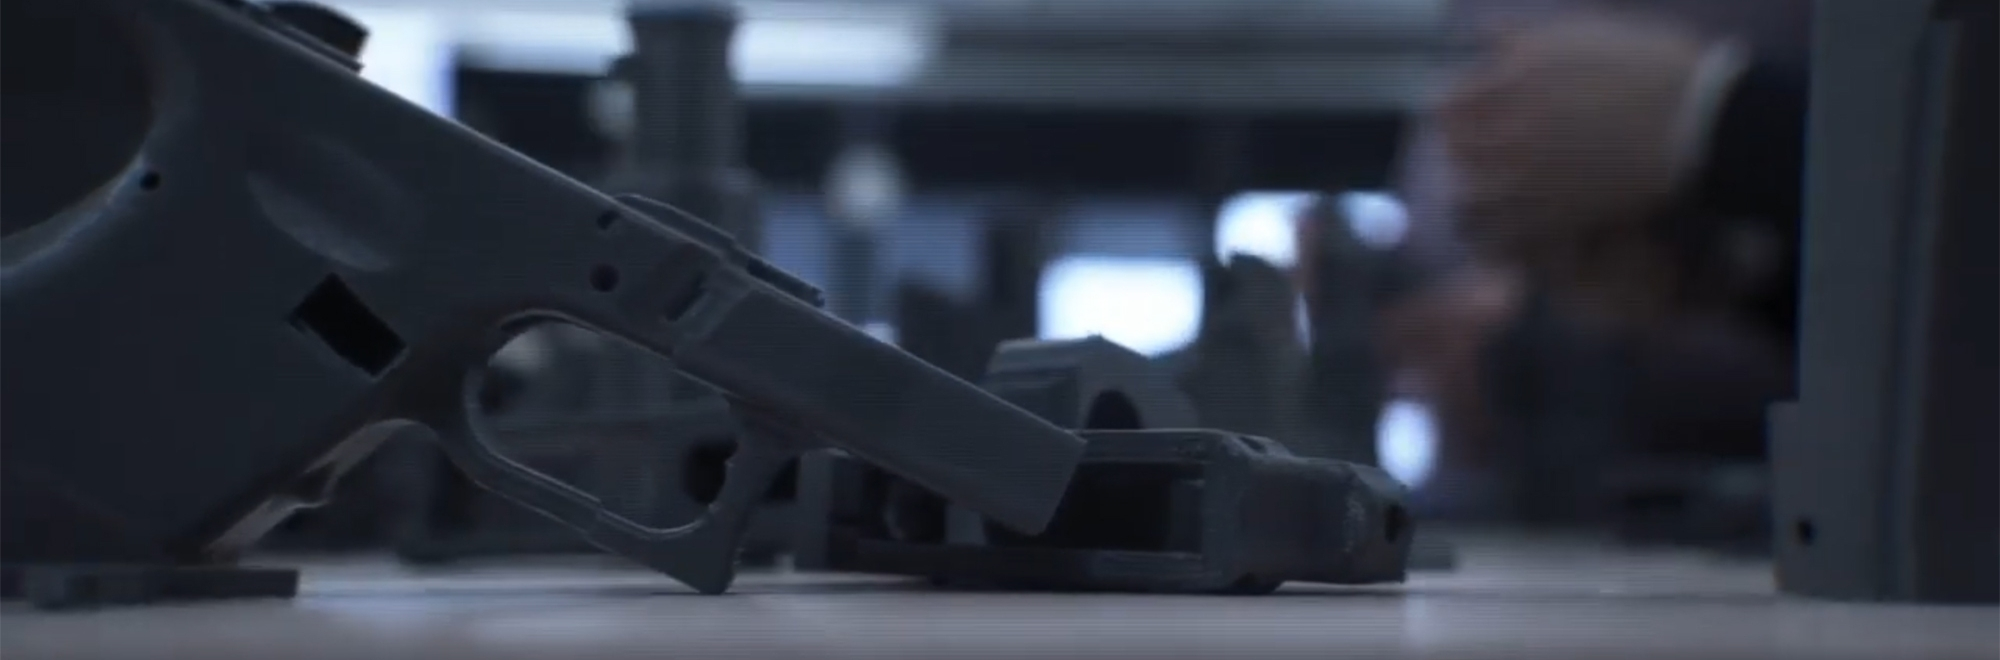 How 3D printing company Dagoma distributed misinformation so that 3D printers printed faulty guns